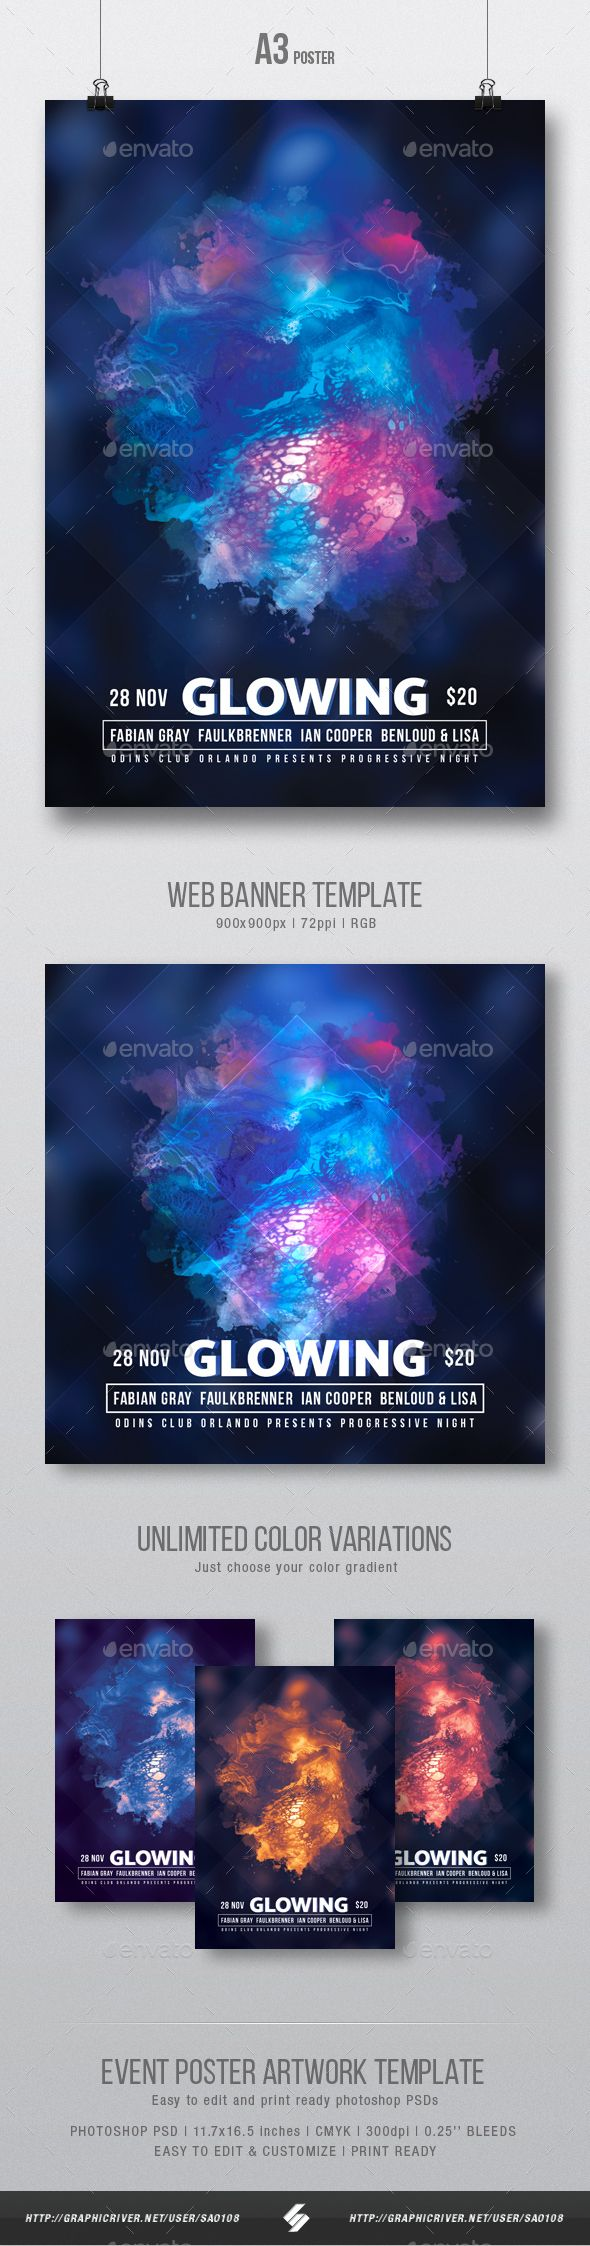 Glowing  Progressive Party Flyer  Poster Artwork Template A